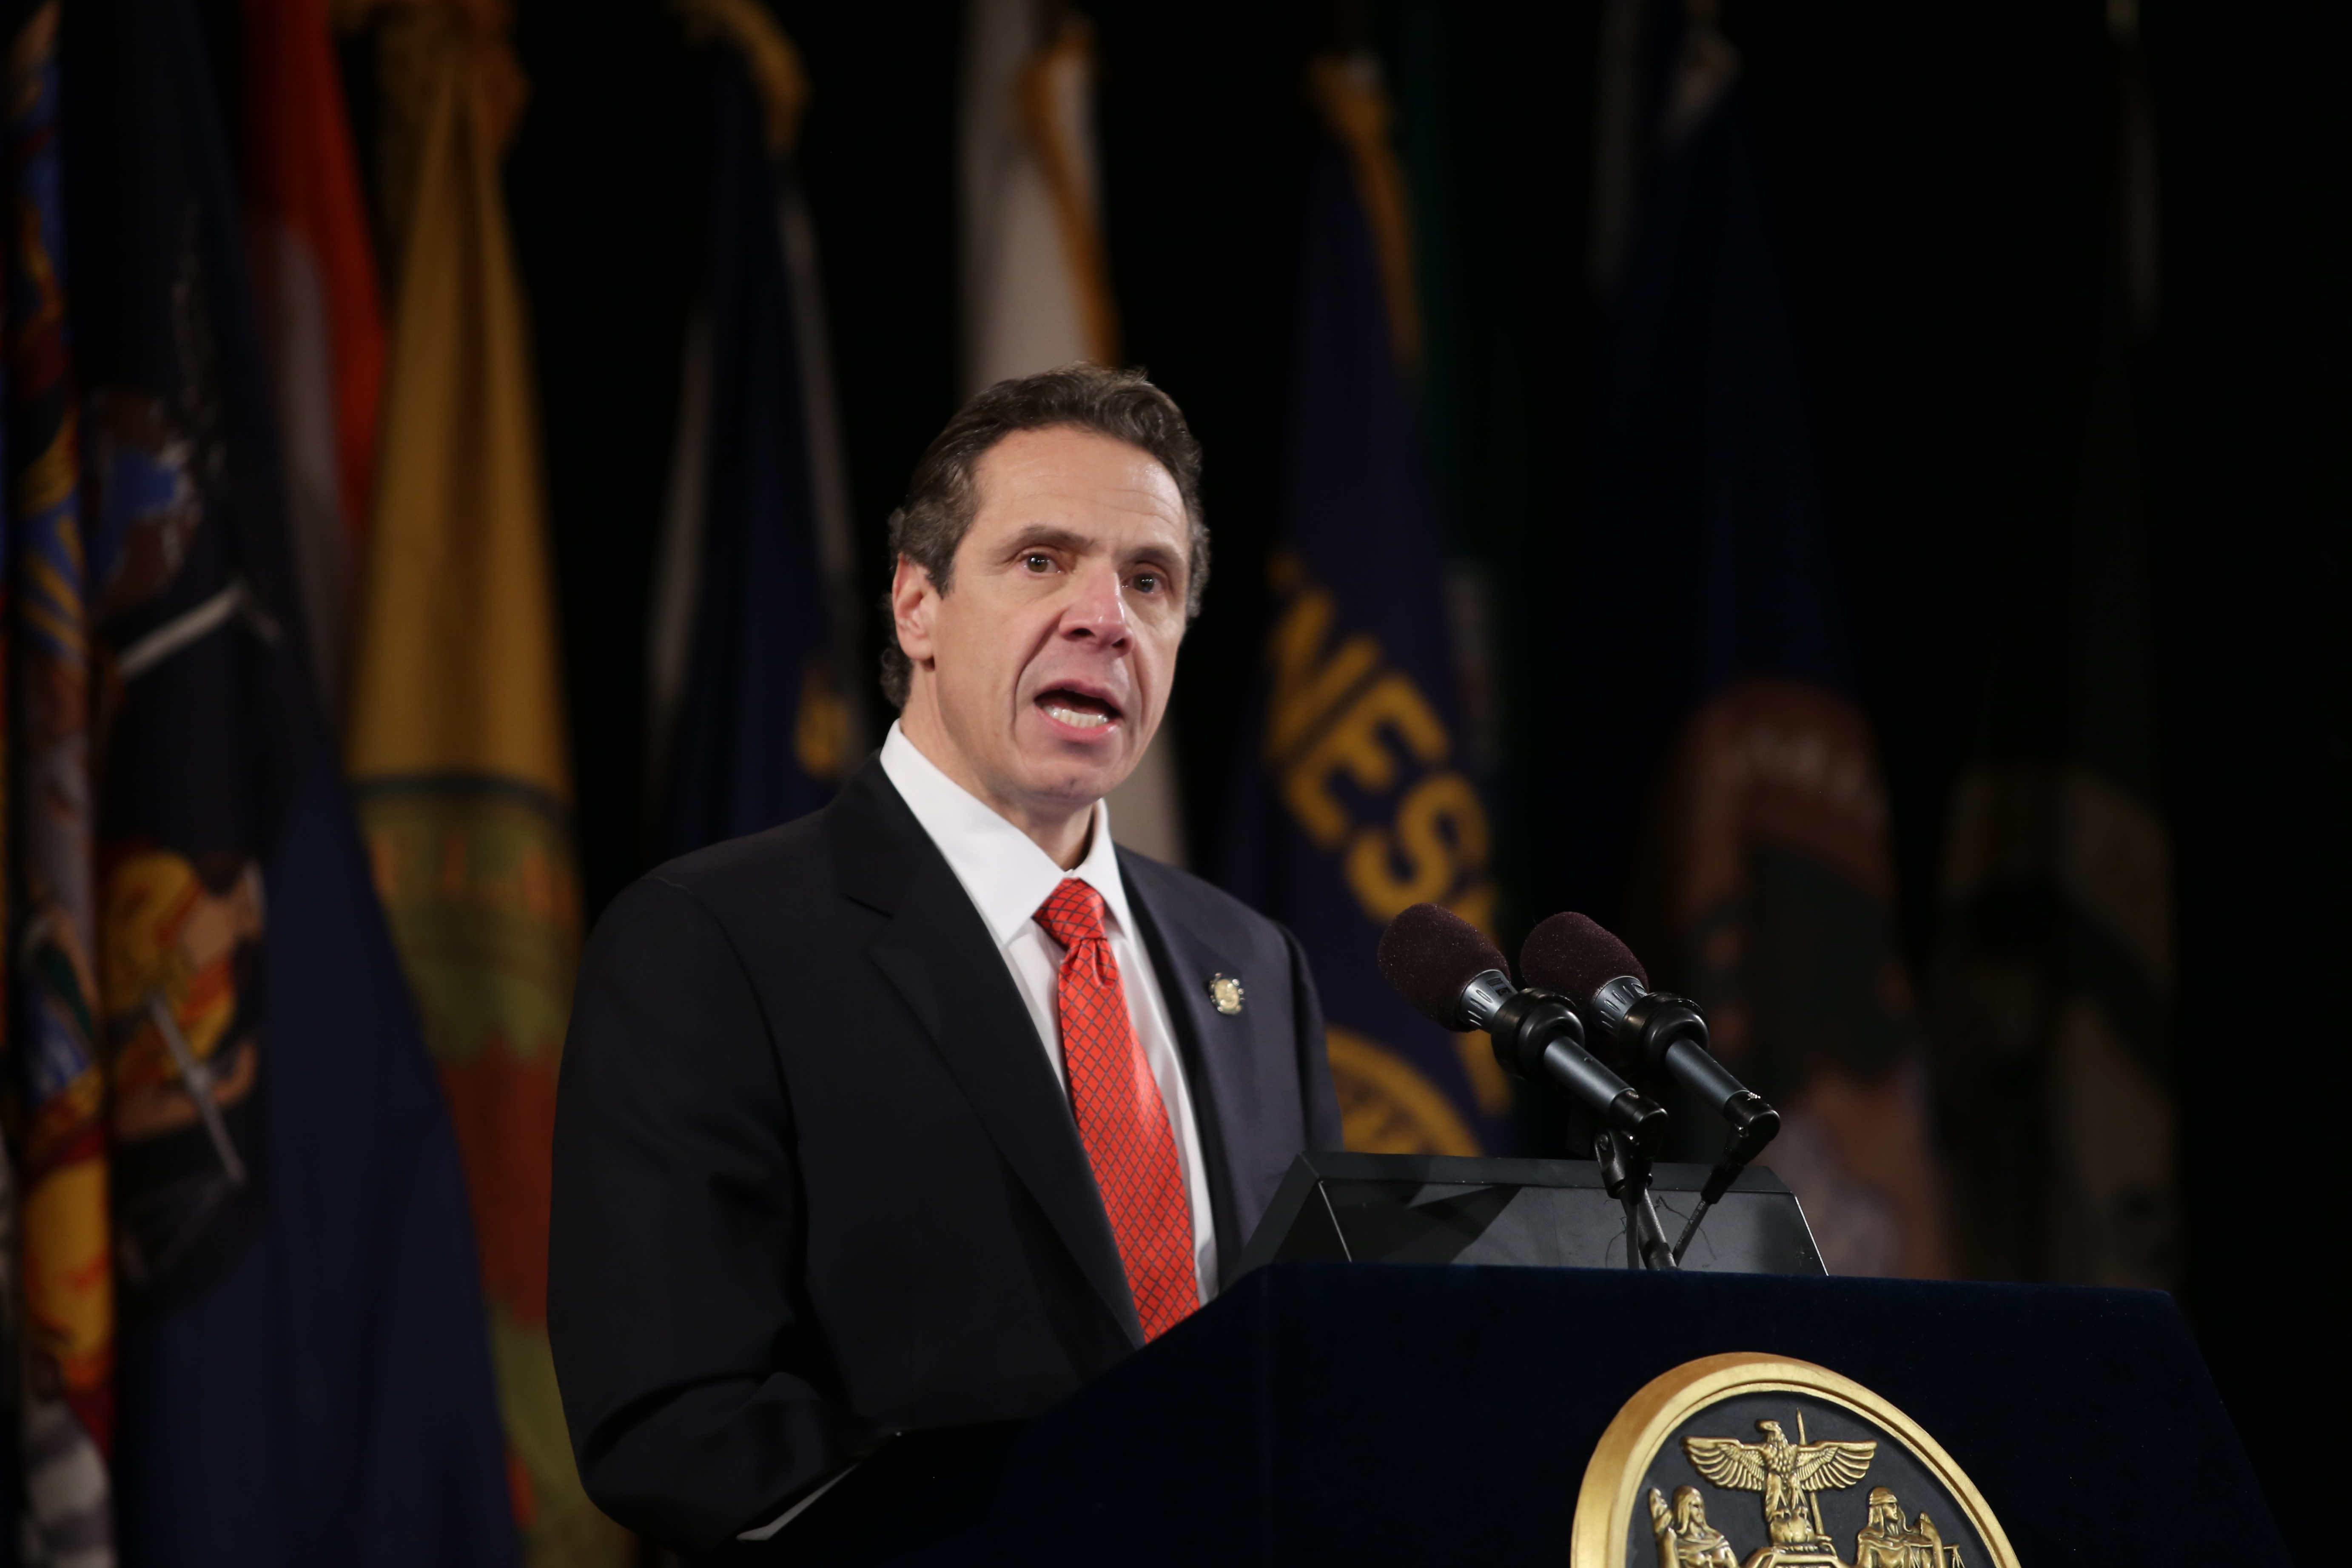 ... aid is available for low-income families in New York. File photo